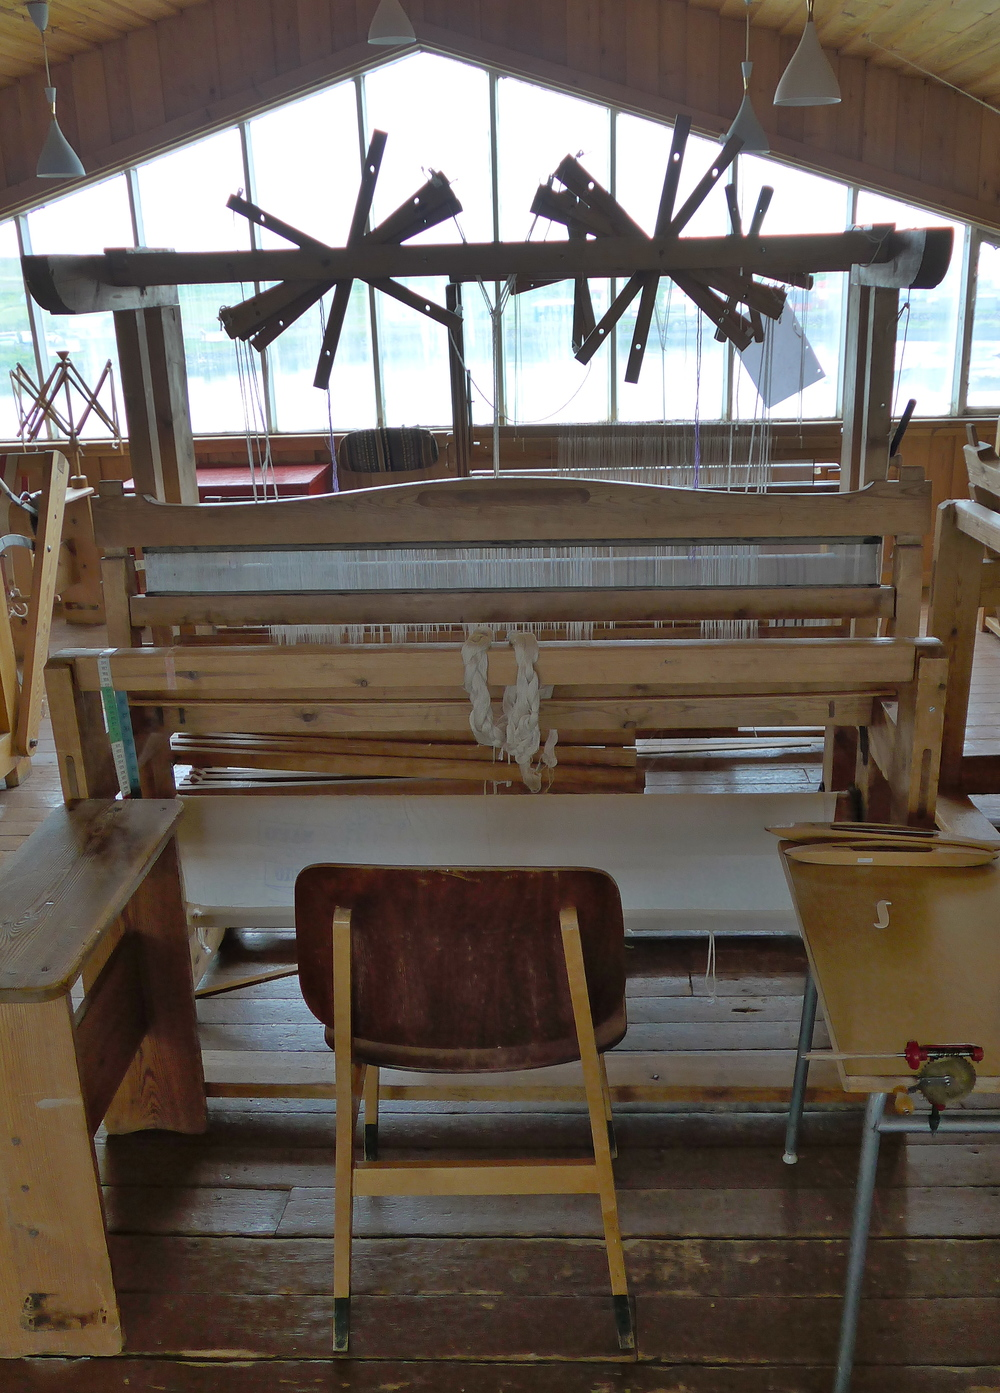 Here's the lovely loom I've decided to spend my time with. Plus there is a nice bonus view too. Thanks to all the previous residents who have restored her to this present state.